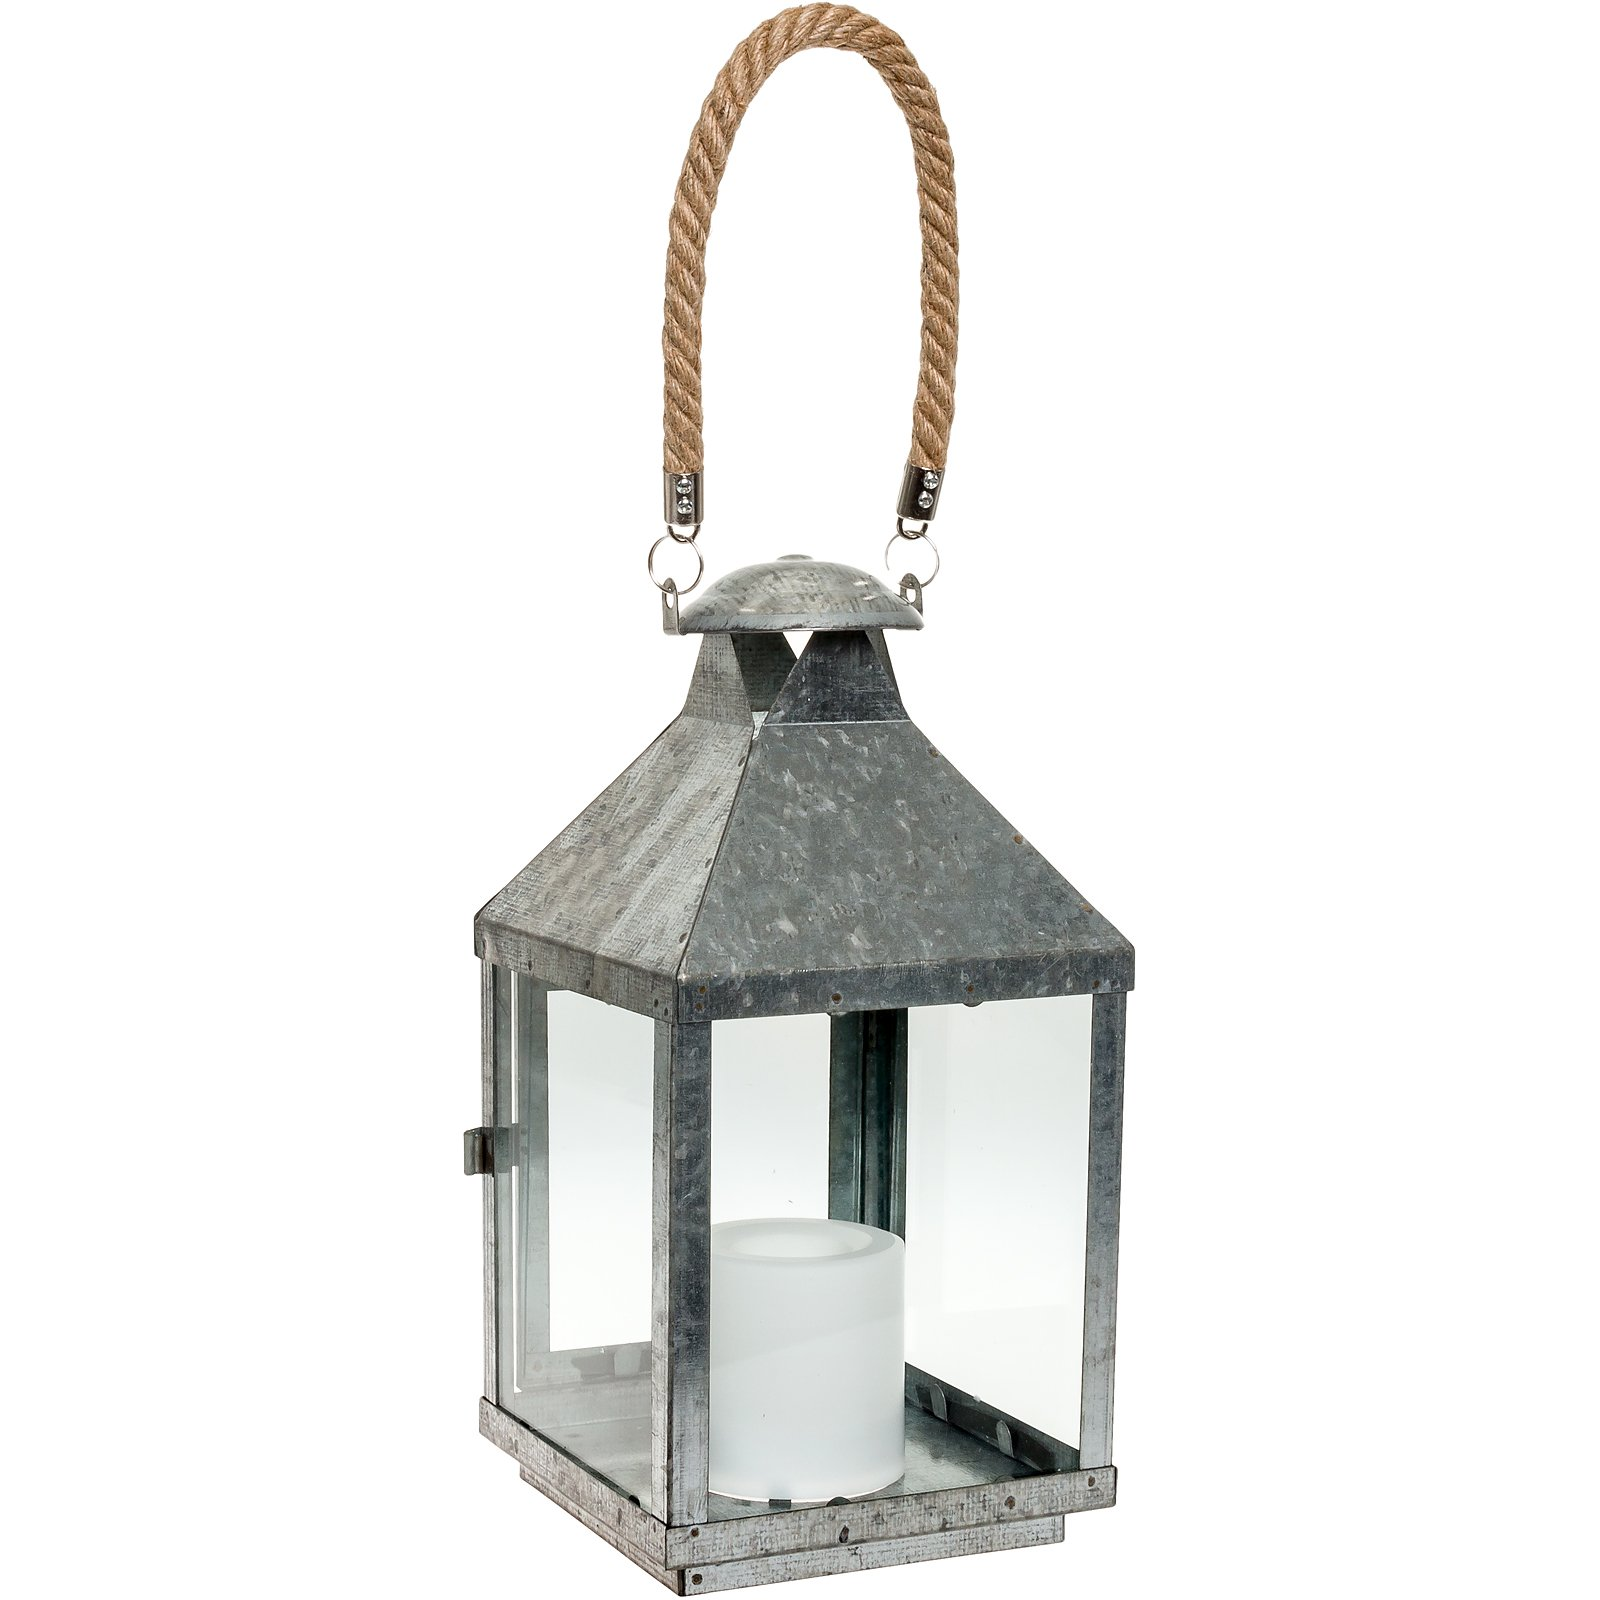 Paradise GL28672MGV Galvanized Metal LED Flameless Candle Lantern w/Rope Handle